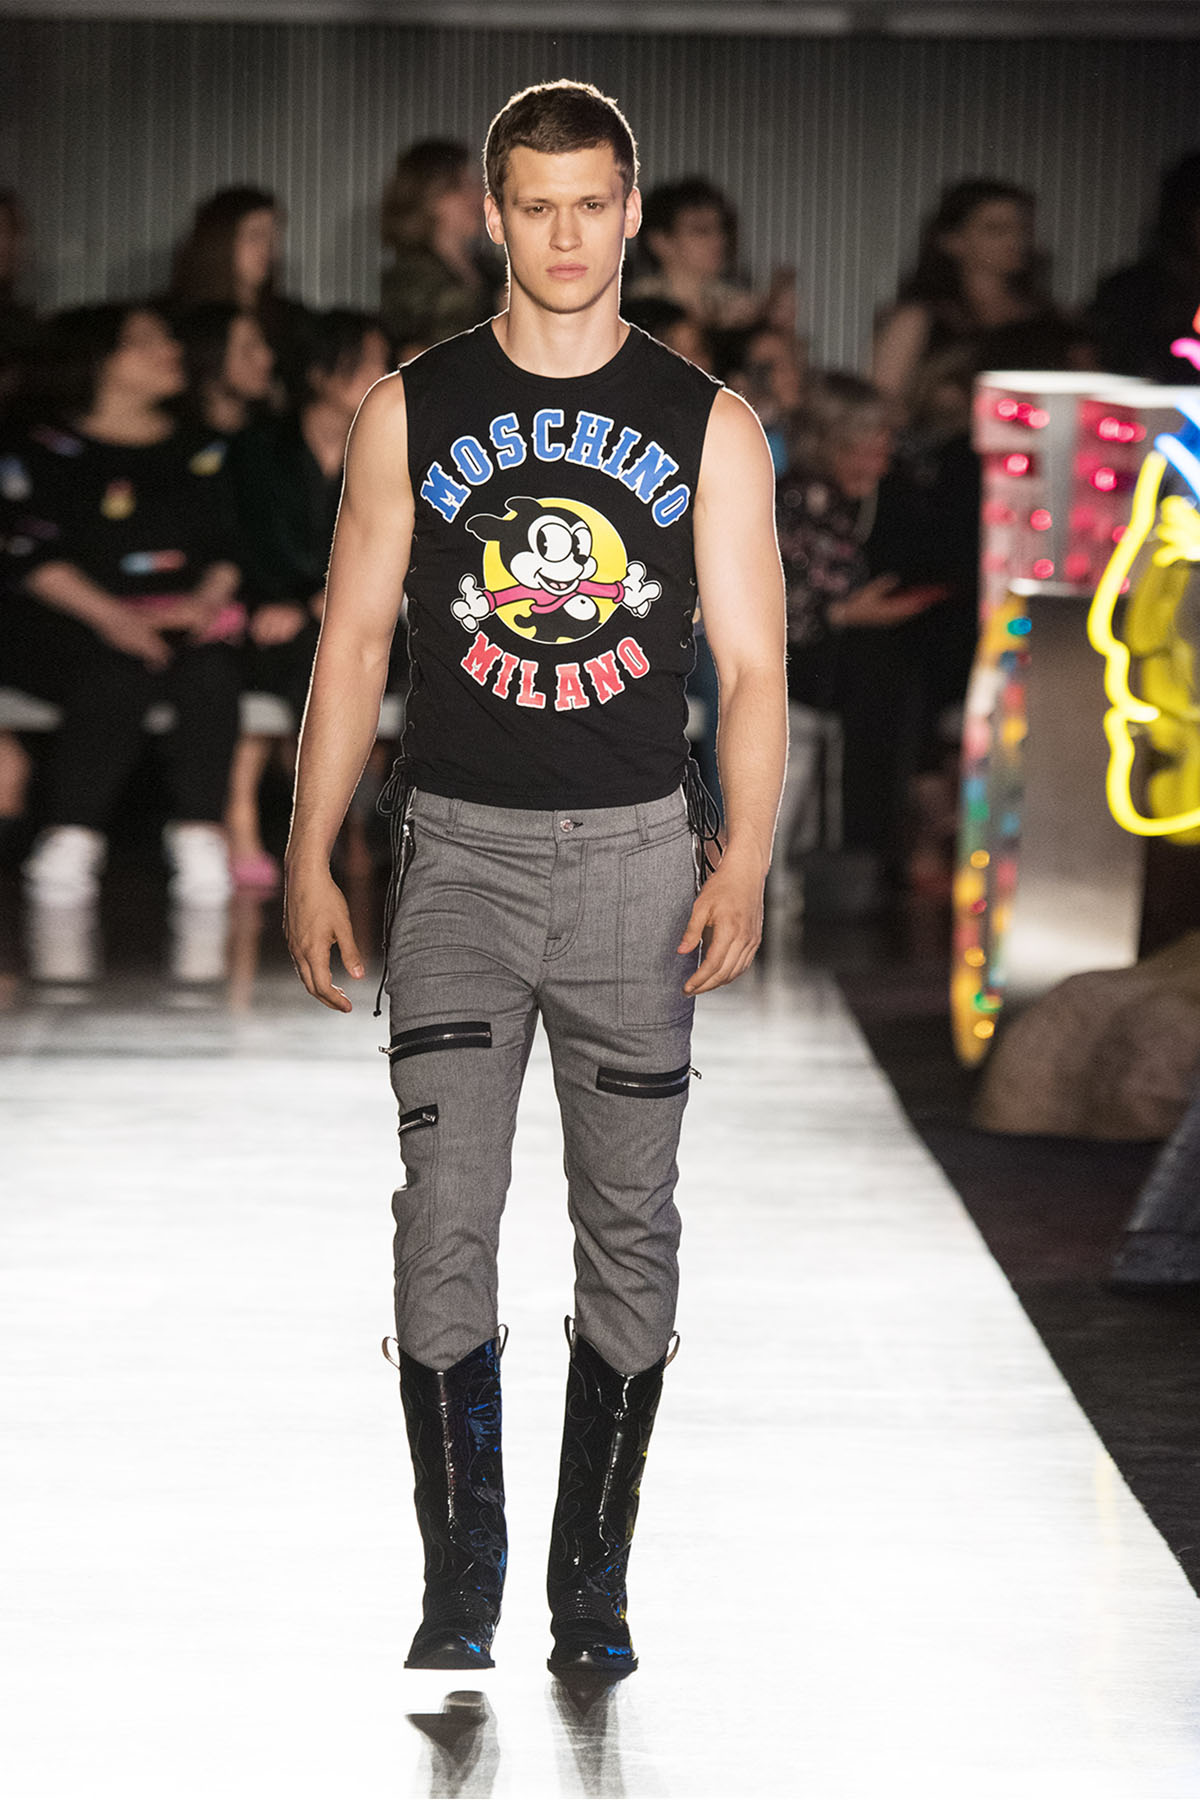 Moschino Spring/Summer 18 Menswear And Women's Resort Collection - Runway